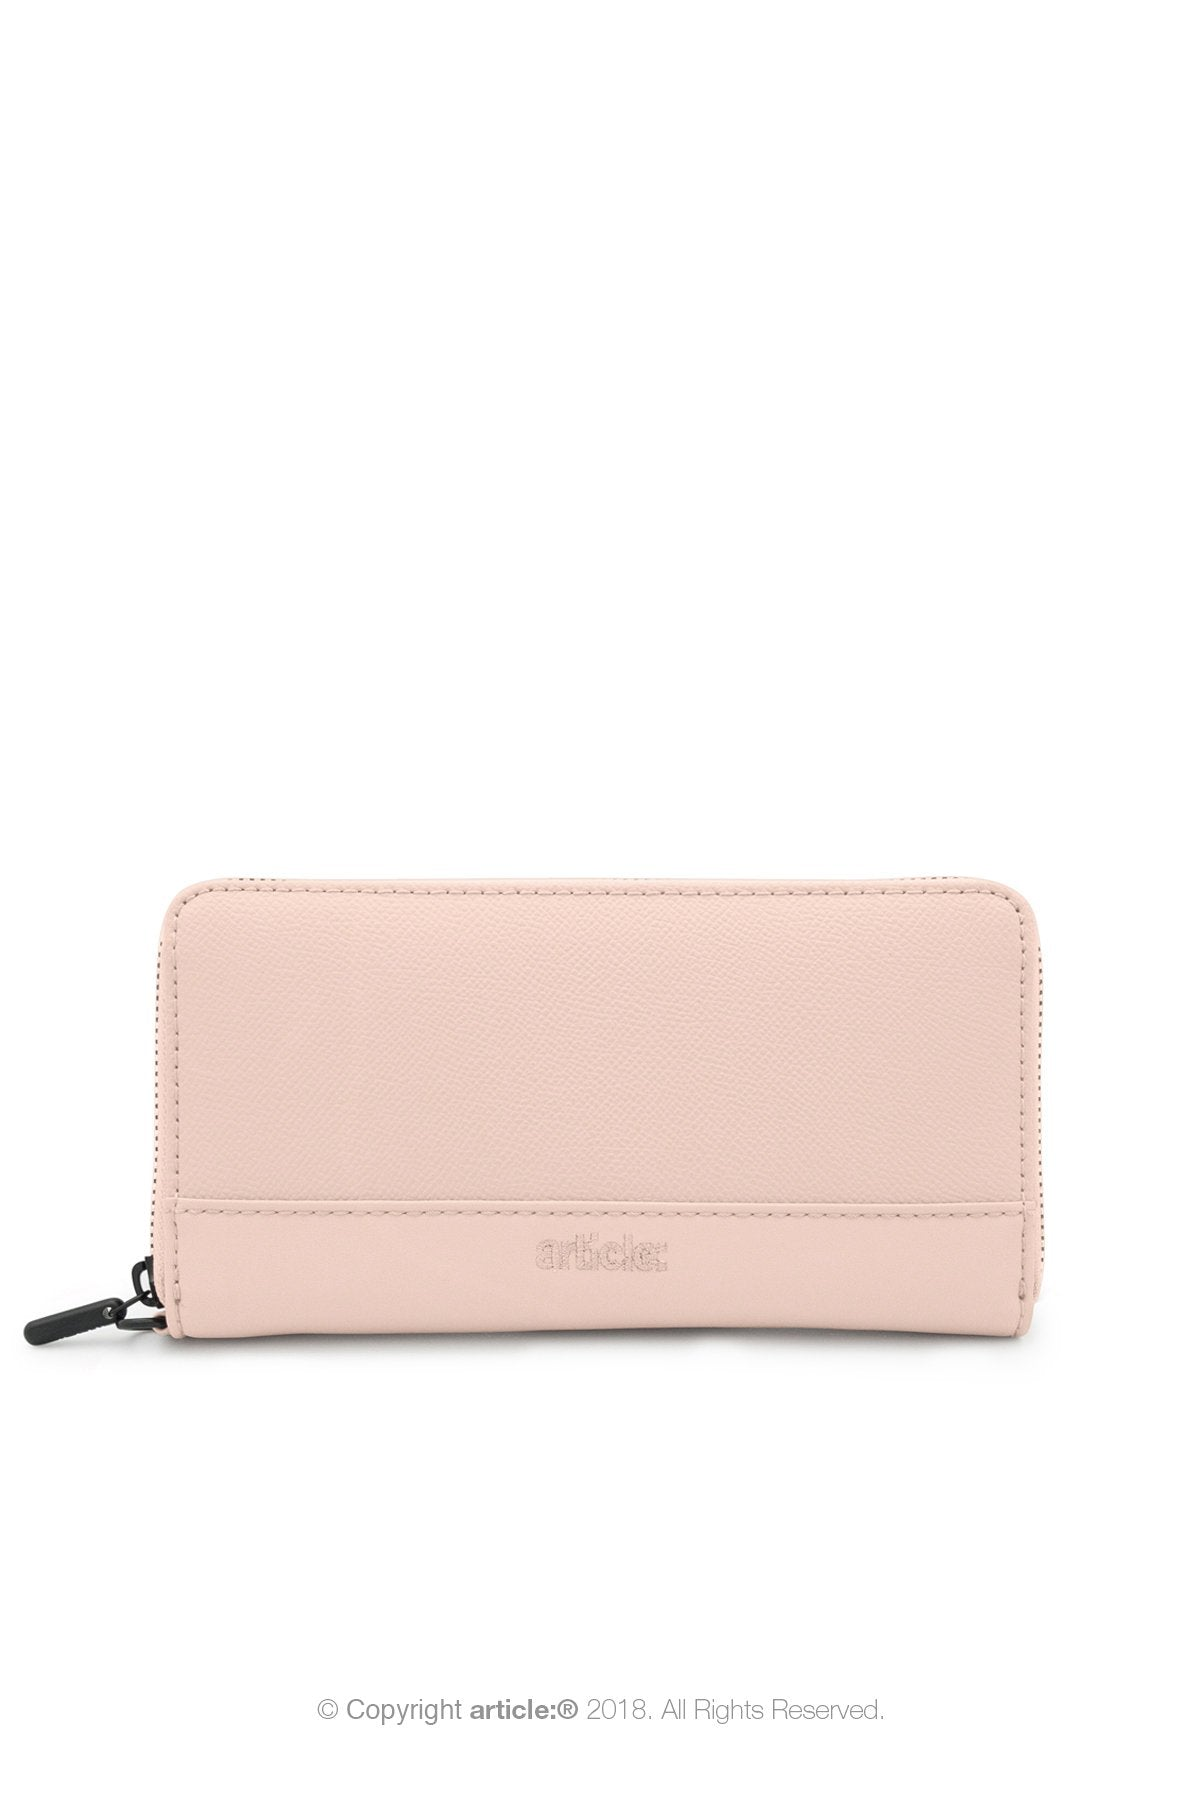 article: #230 Wallet - Ballet